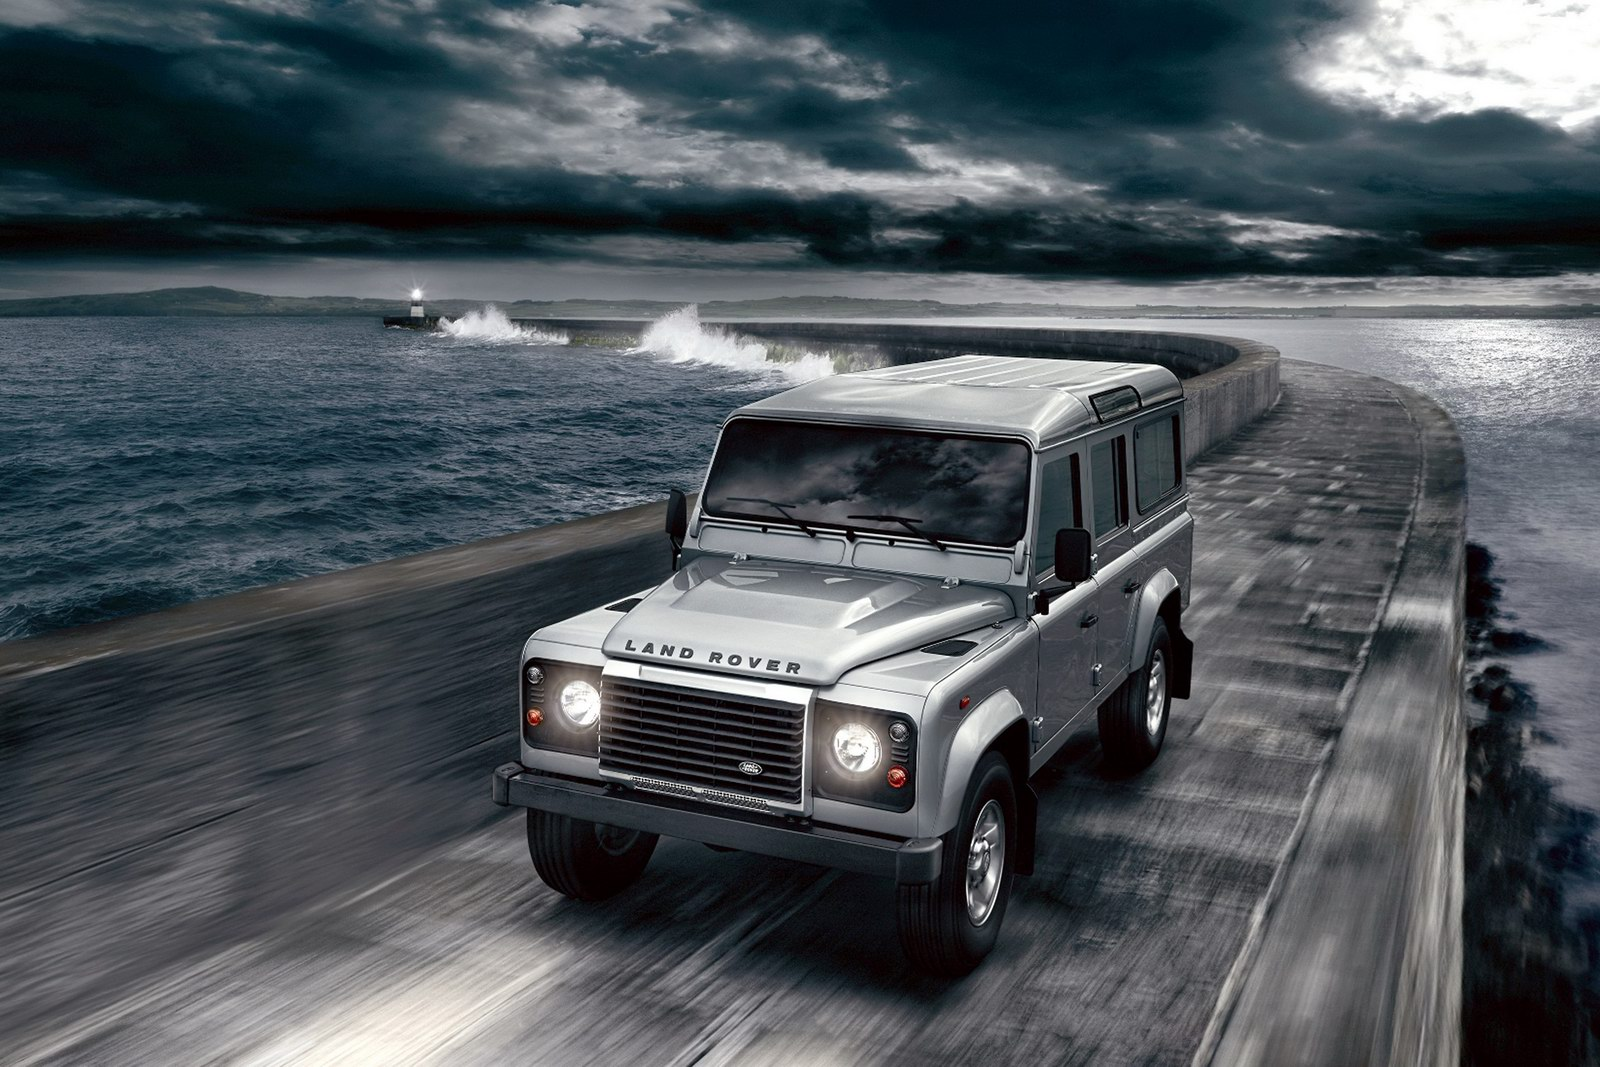 2012 Land Rover Defender 1 2012 Land Rover Defender   Futuristic Car with New Upgradation Tools